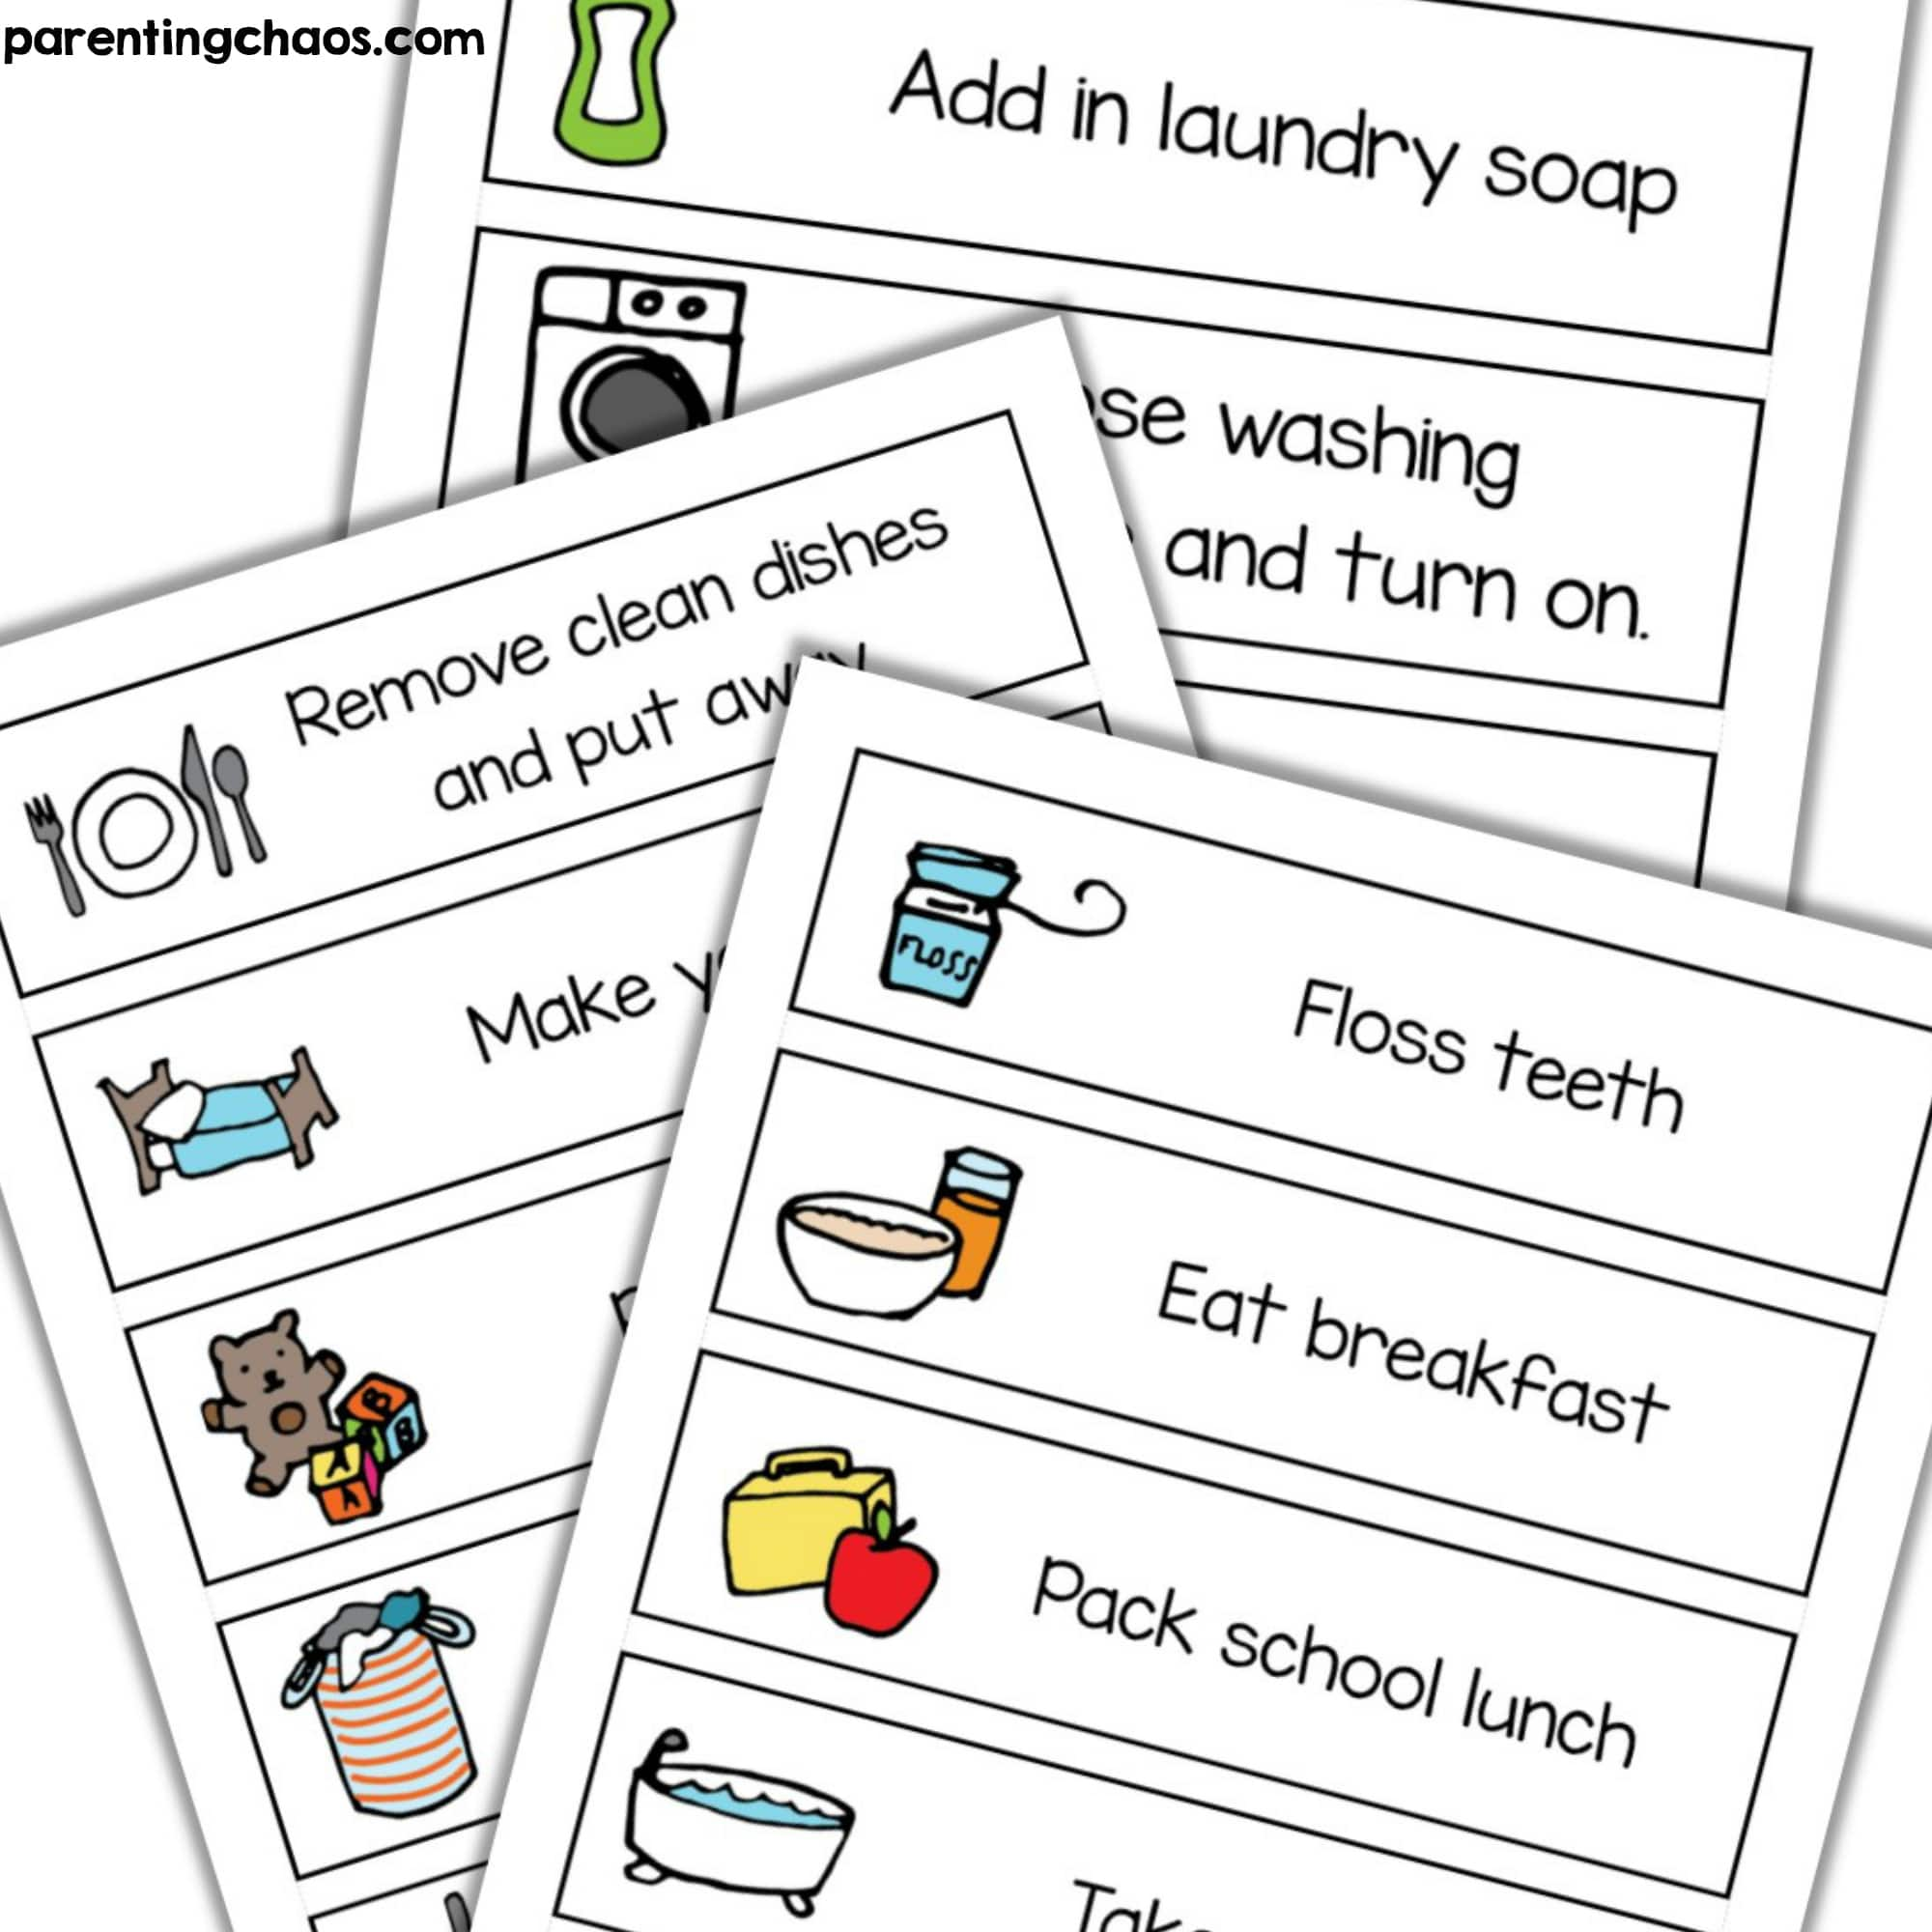 photograph about Free Printable Chore Cards identified as Visible Job Chore Playing cards Printable ⋆ Parenting Chaos